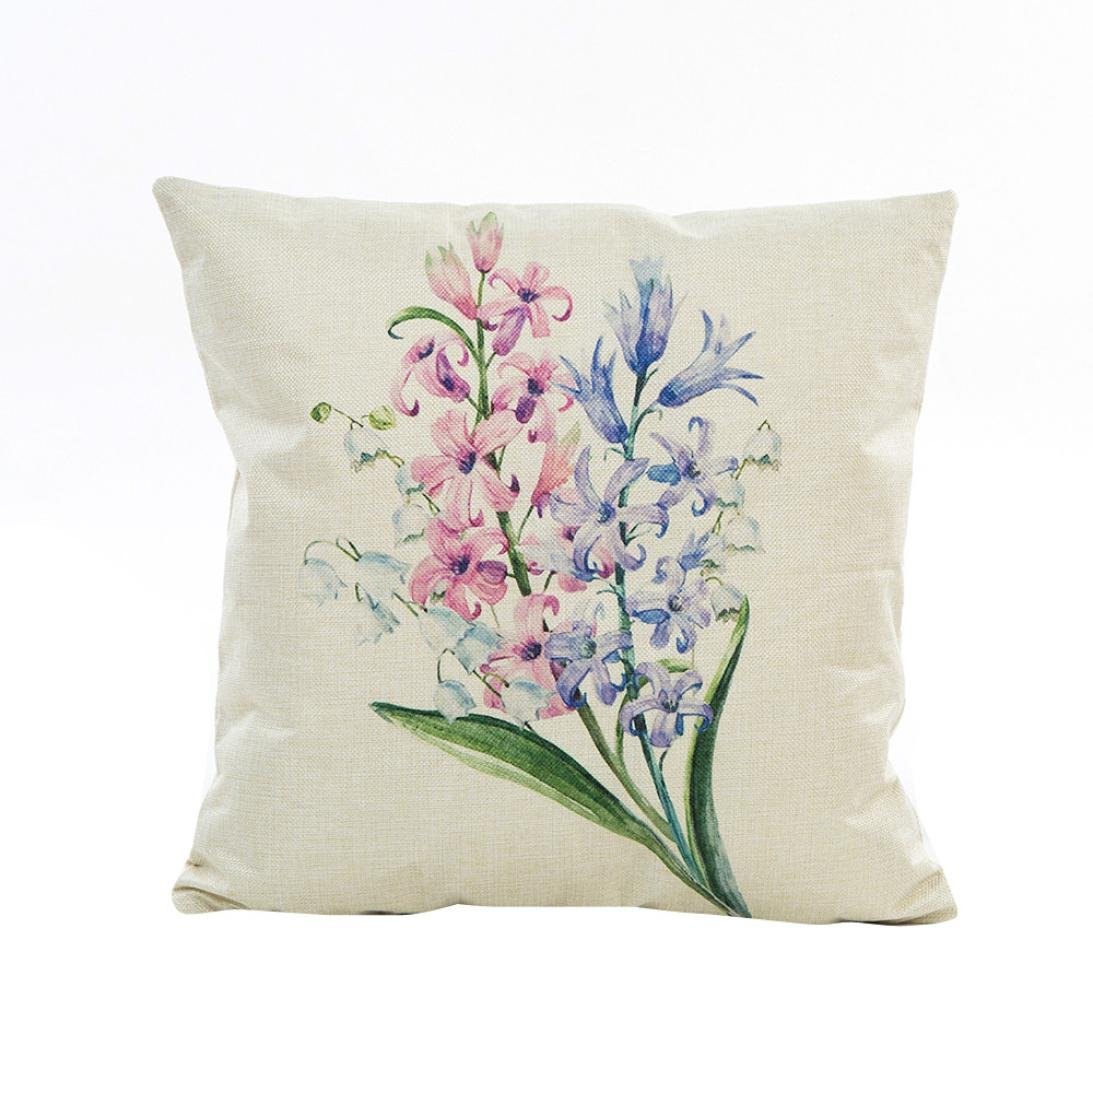 Lavany Pillow Cases, Pillow Covers Flowers Grass Pattern Pillowcases Cushion Sofa Home Decorative (B)